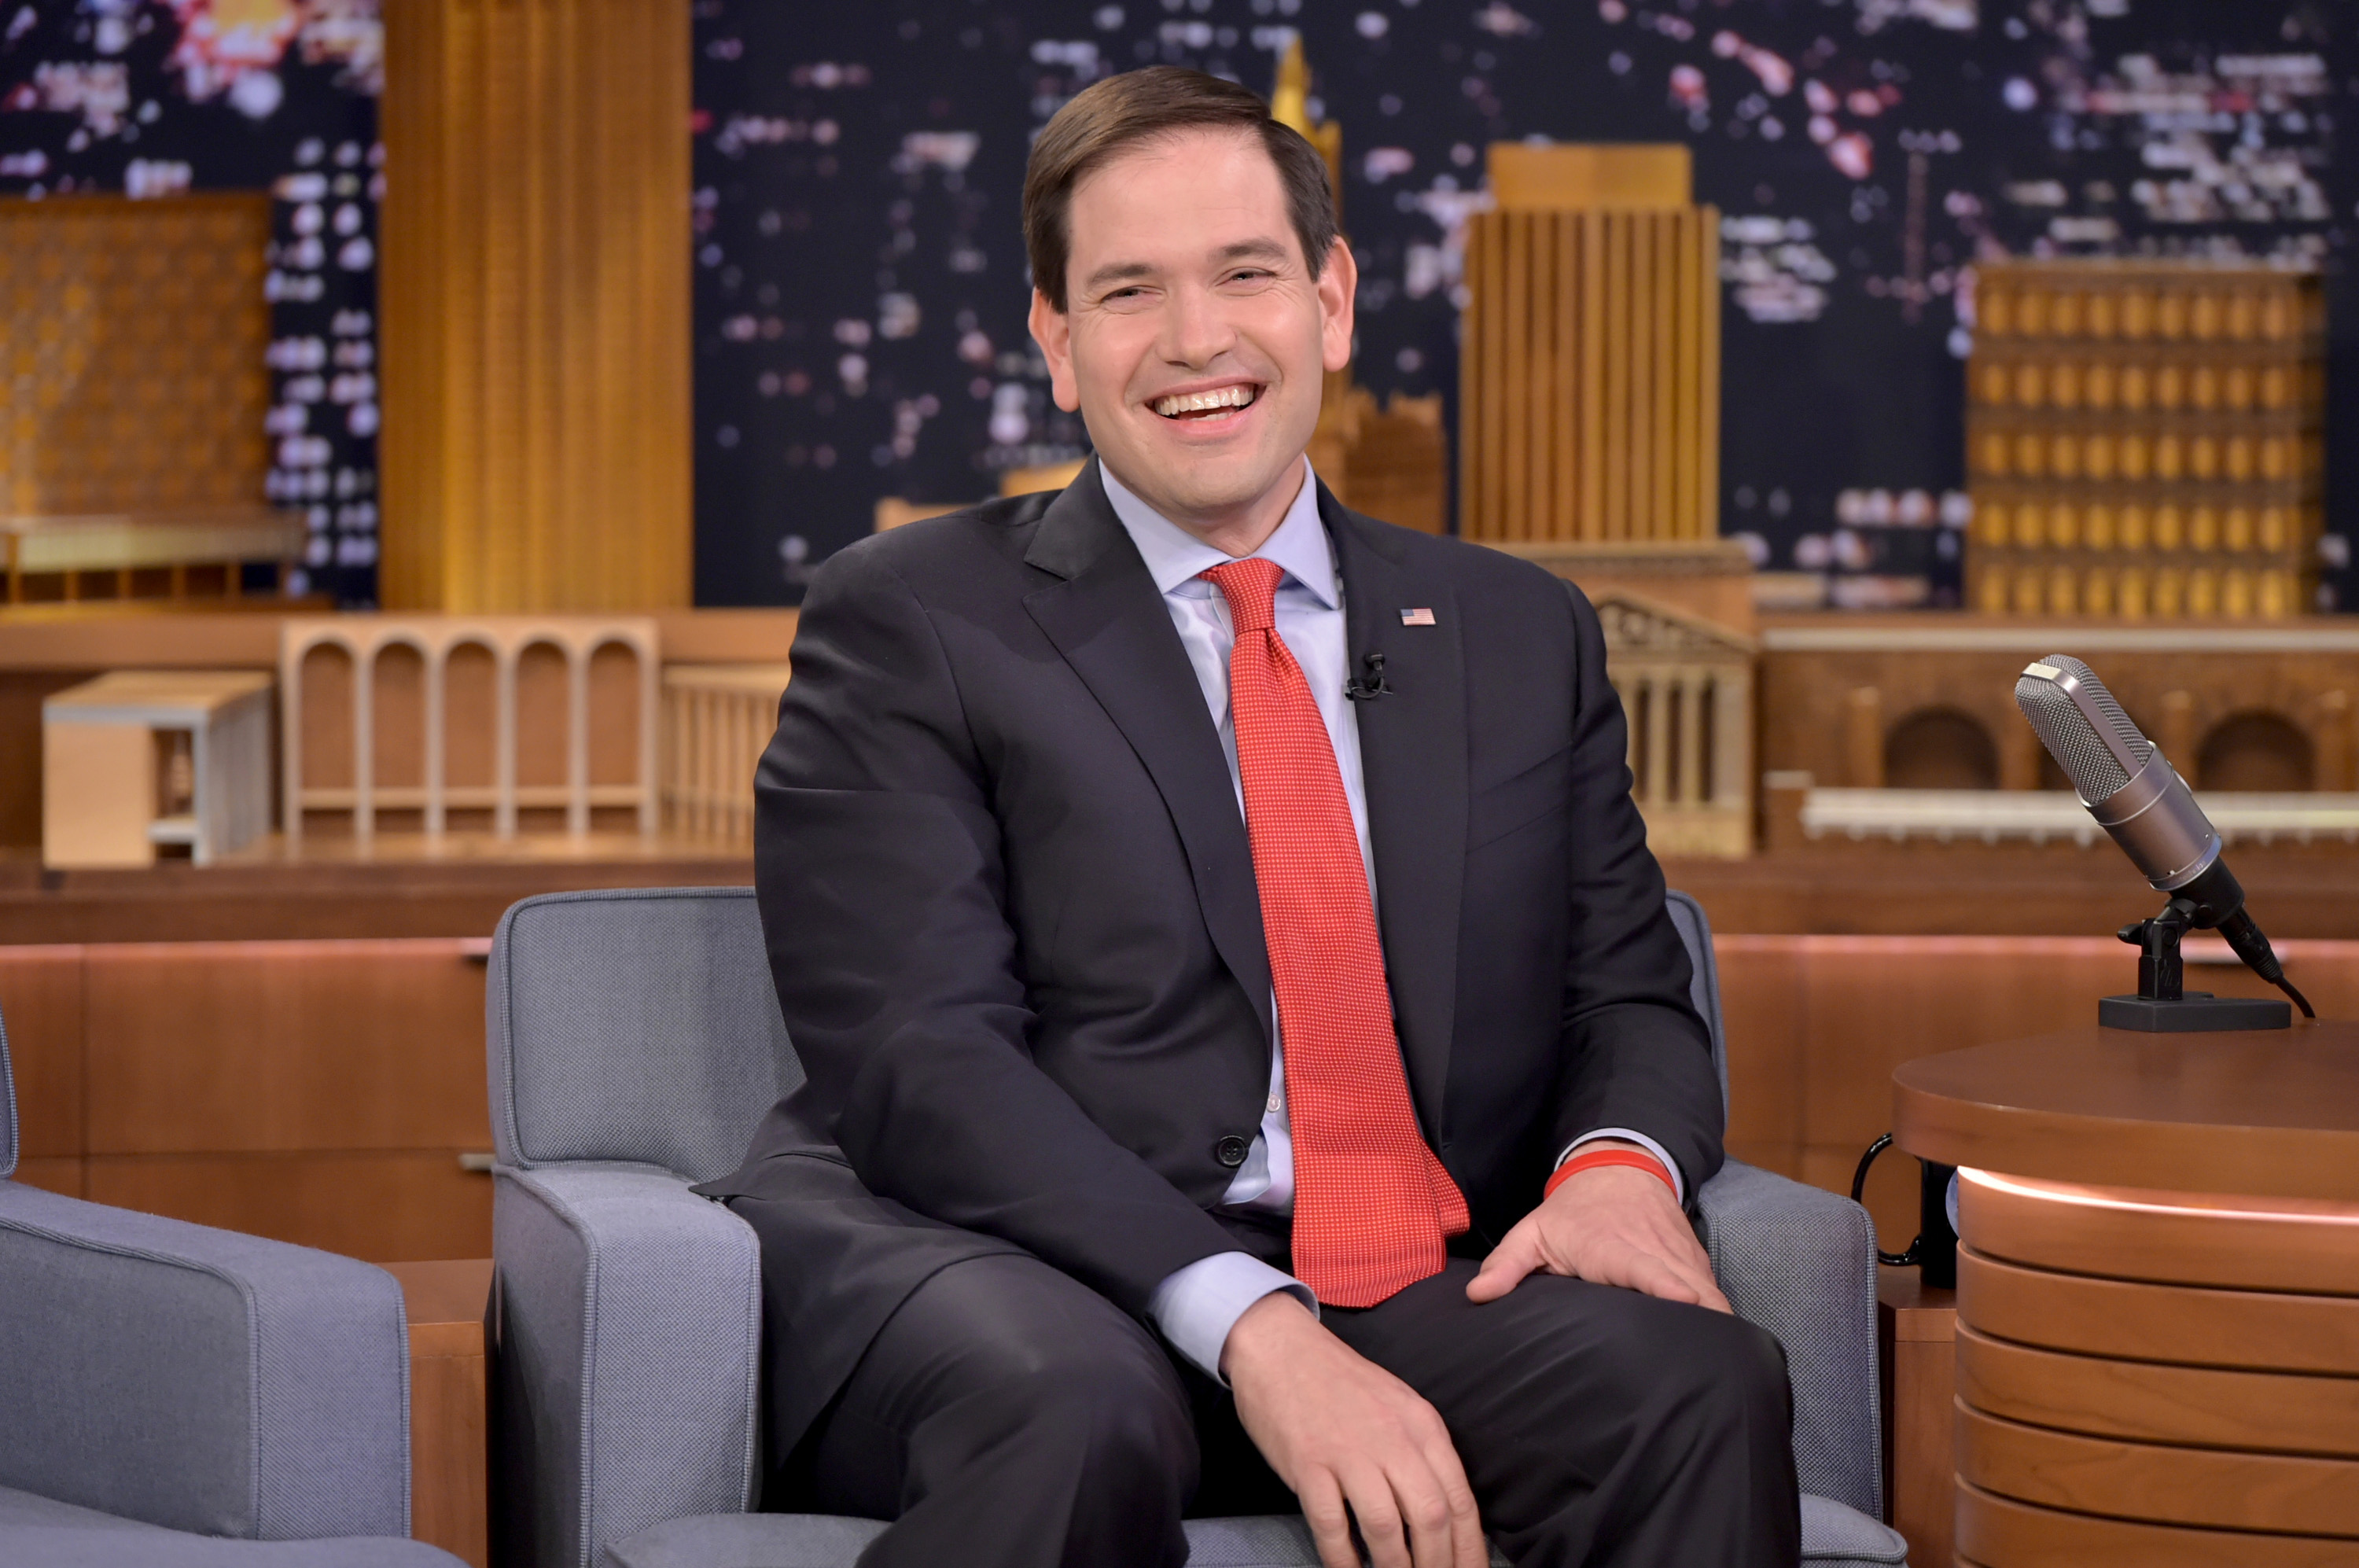 Senator Marco Rubio on The Tonight Show starring Jimmy Fallon on January 21, 2016